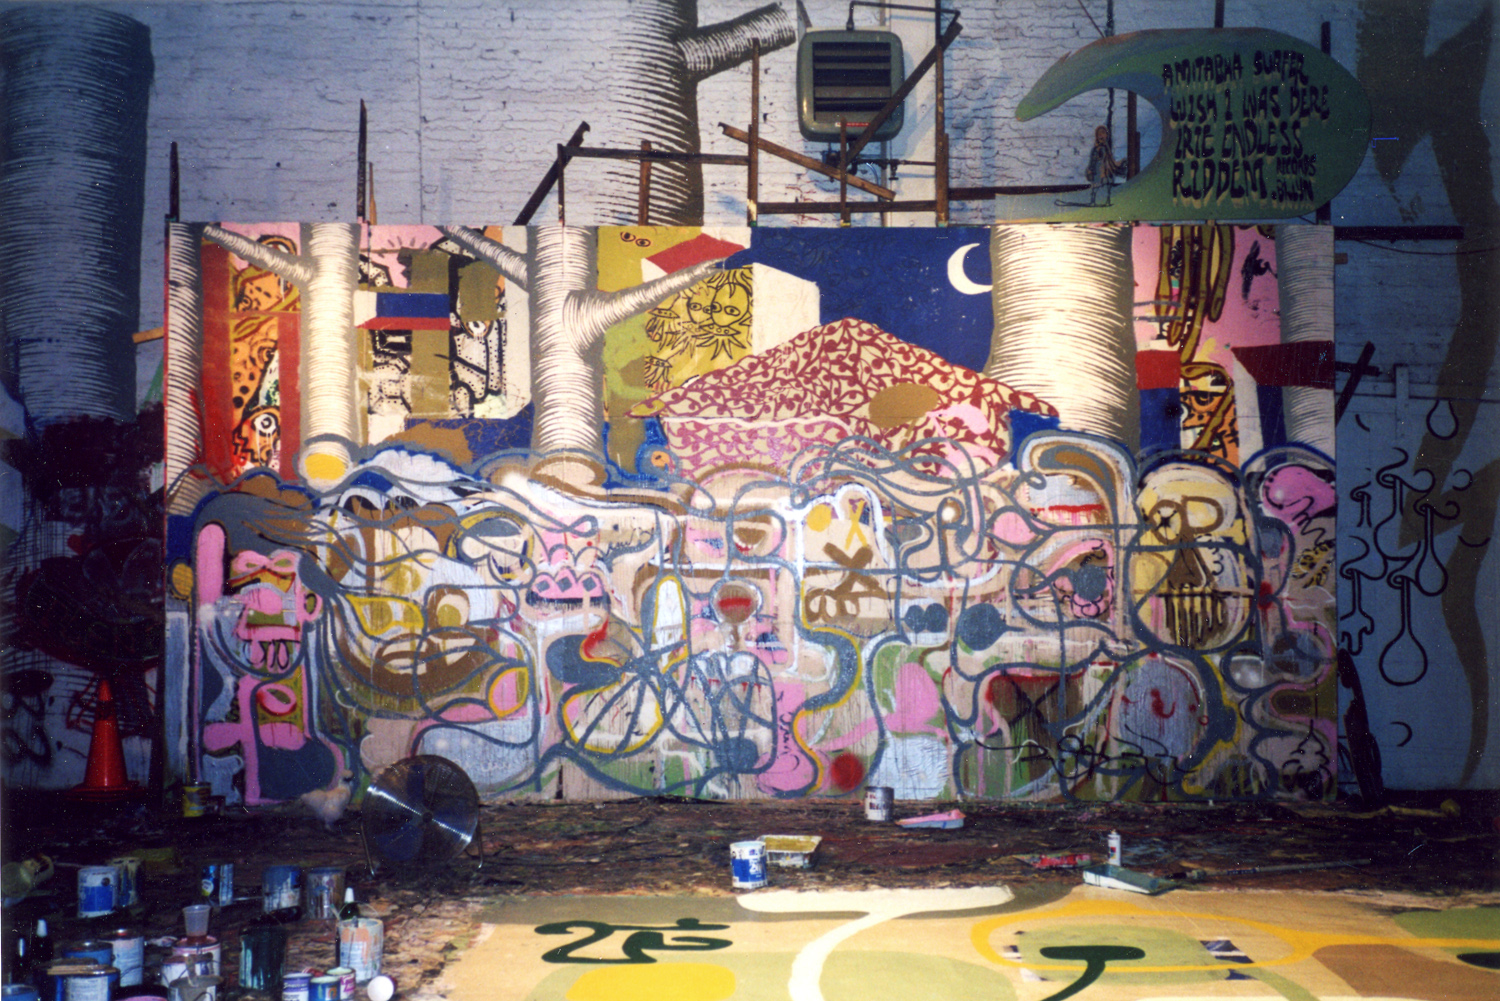 installation view,  Barnstormers: No Condition Is Permanent   Smack Mellon  DUMBO, Brooklyn, 2001